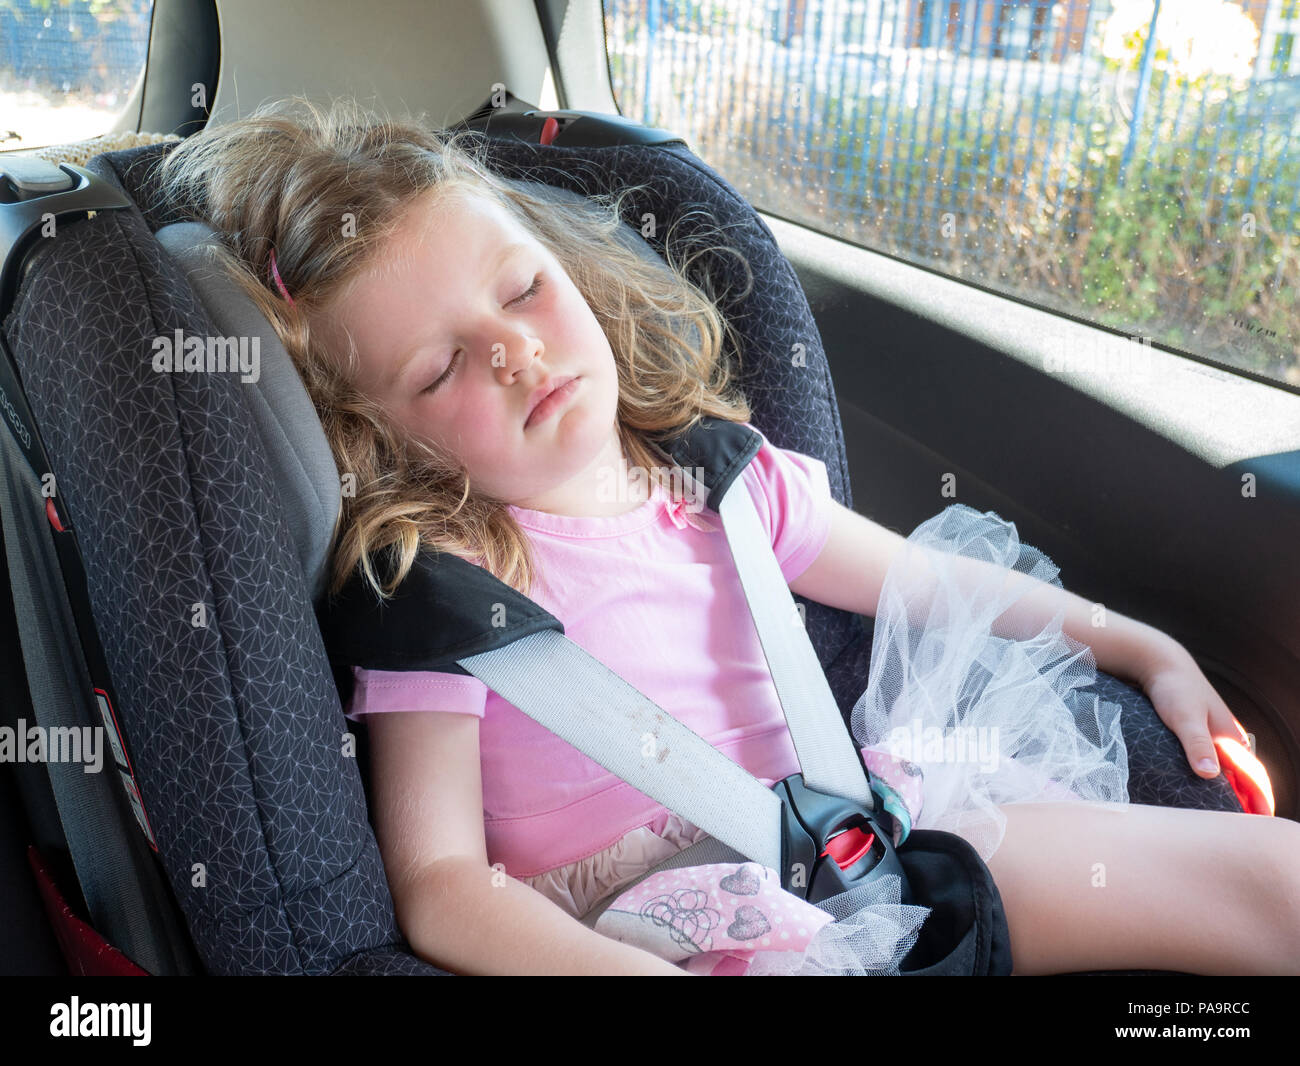 Baby Car Seat Uk Three Year Old Child Sleeping In Her Car Seat Uk Stock